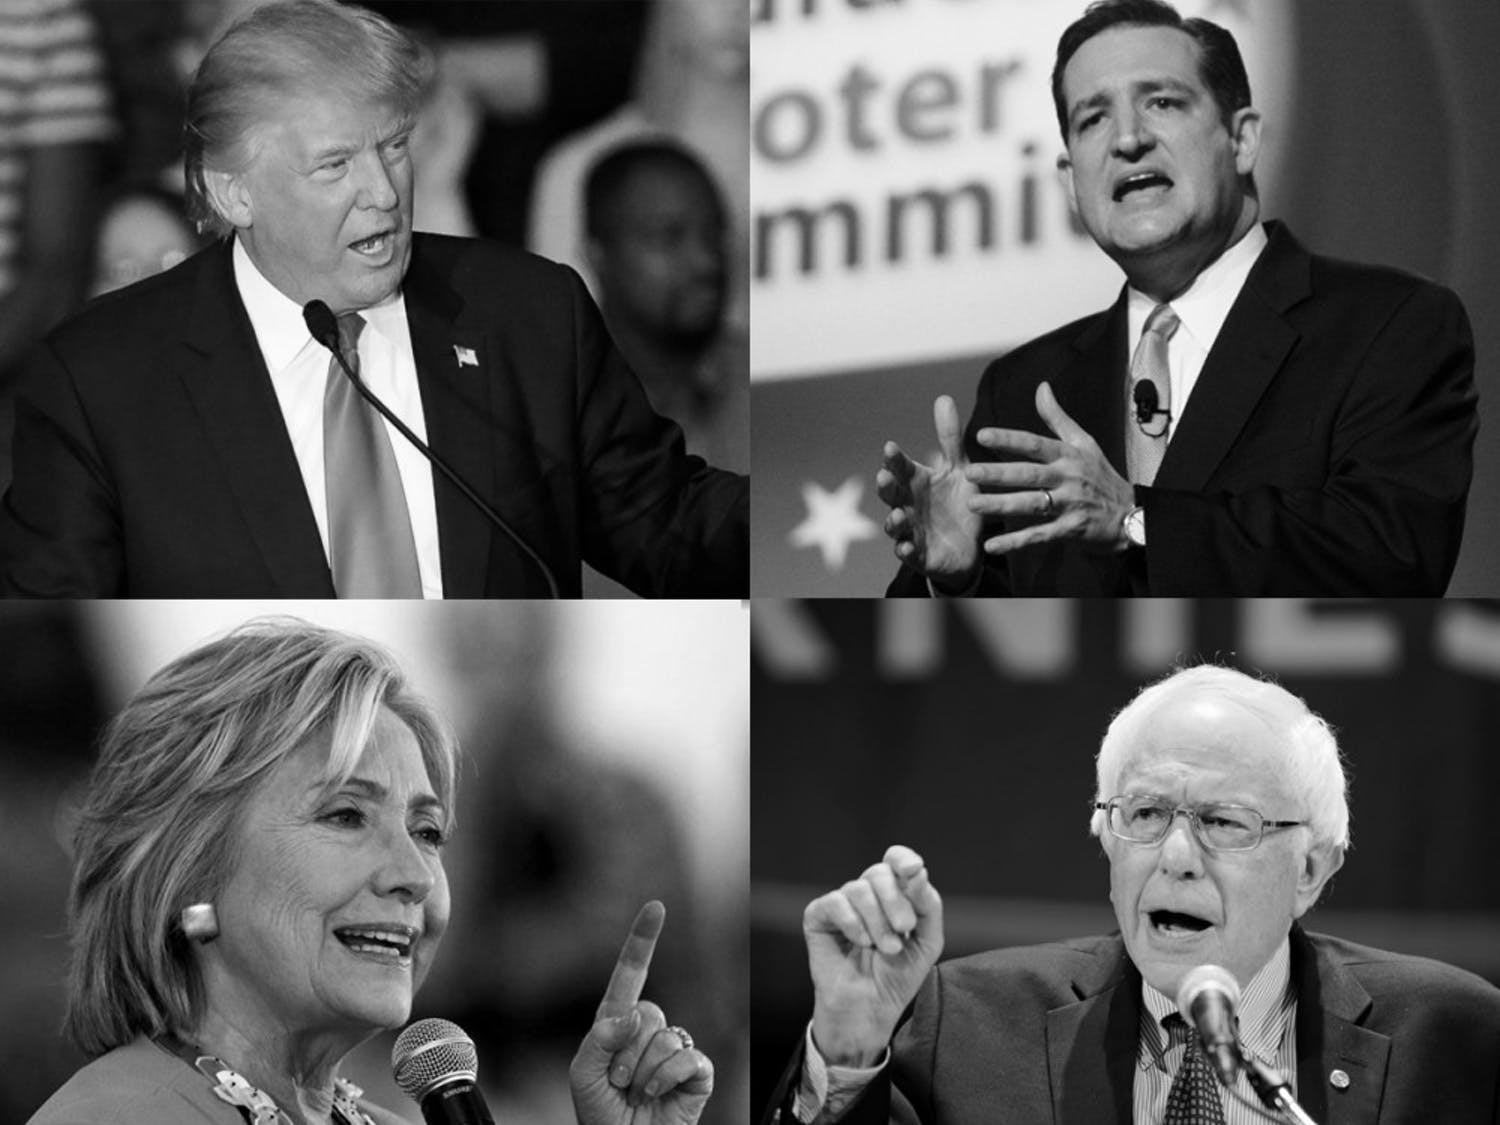 Business mogul Donald Trump (top left) and Vermont Senator Bernie Sanders (bottom right) claimed decisive victories in the New Hampshire primary Tuesday.